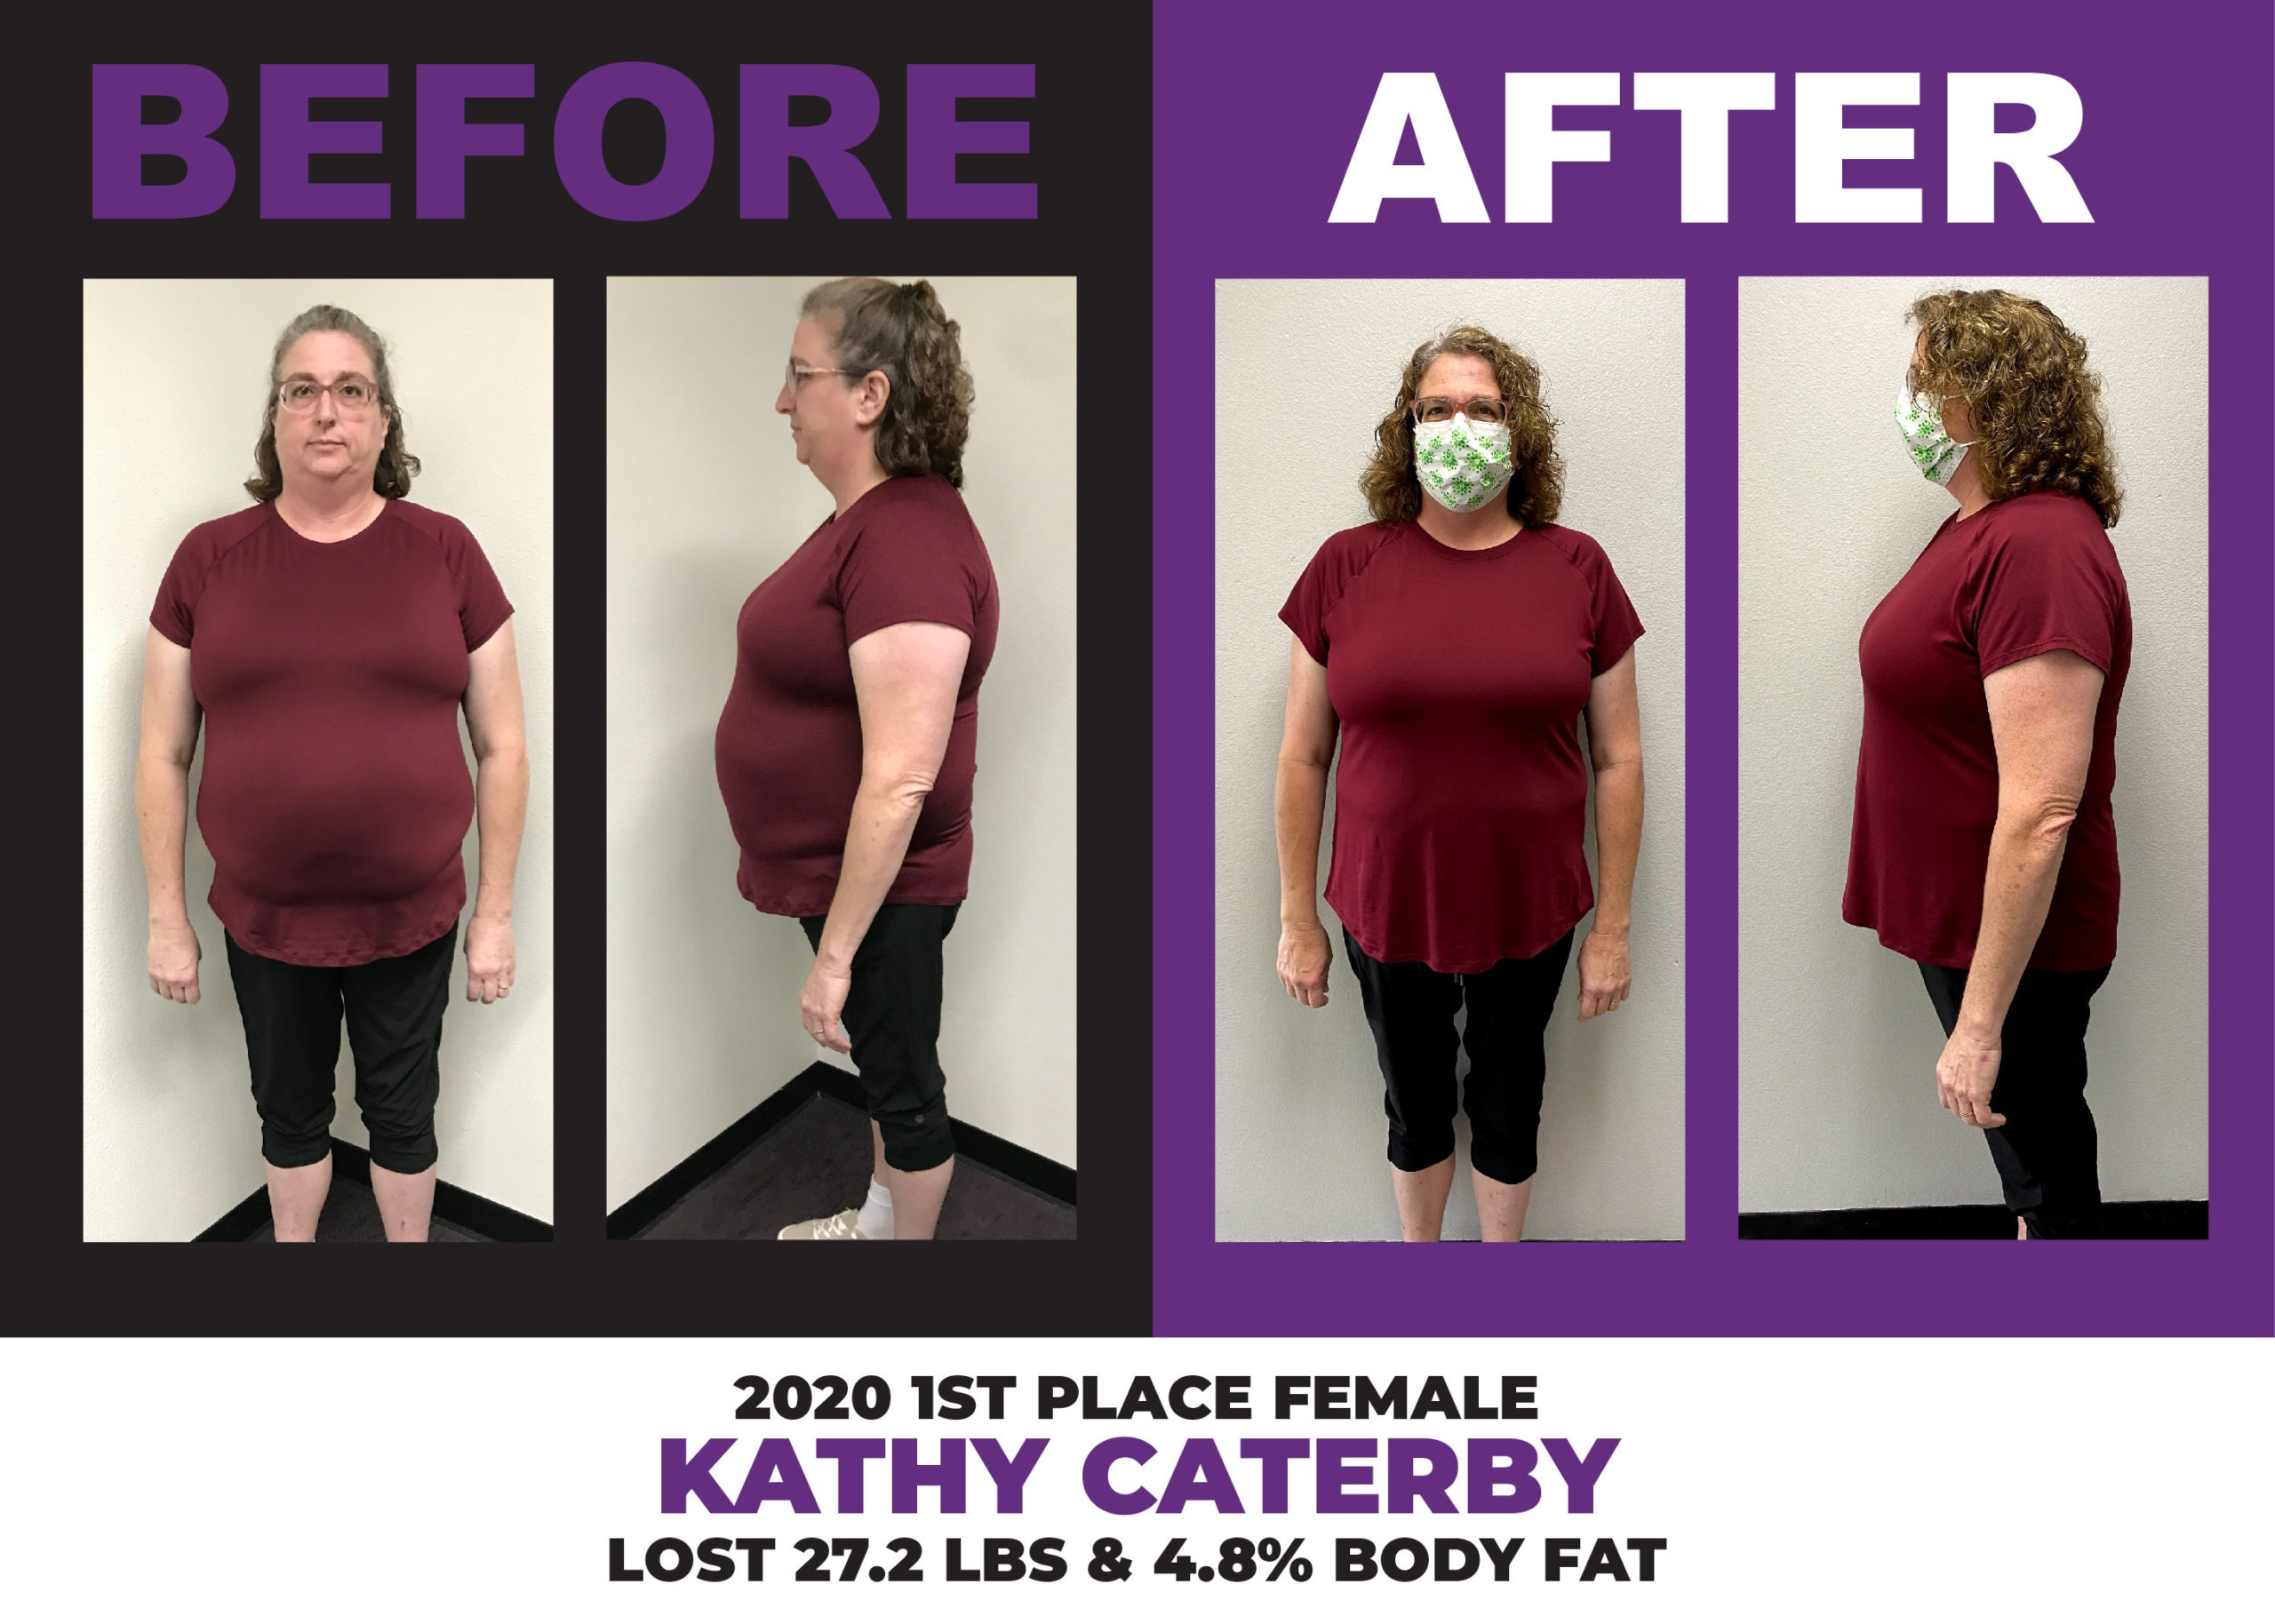 2020 Weight Loss Challenge 1st Place Female Winner